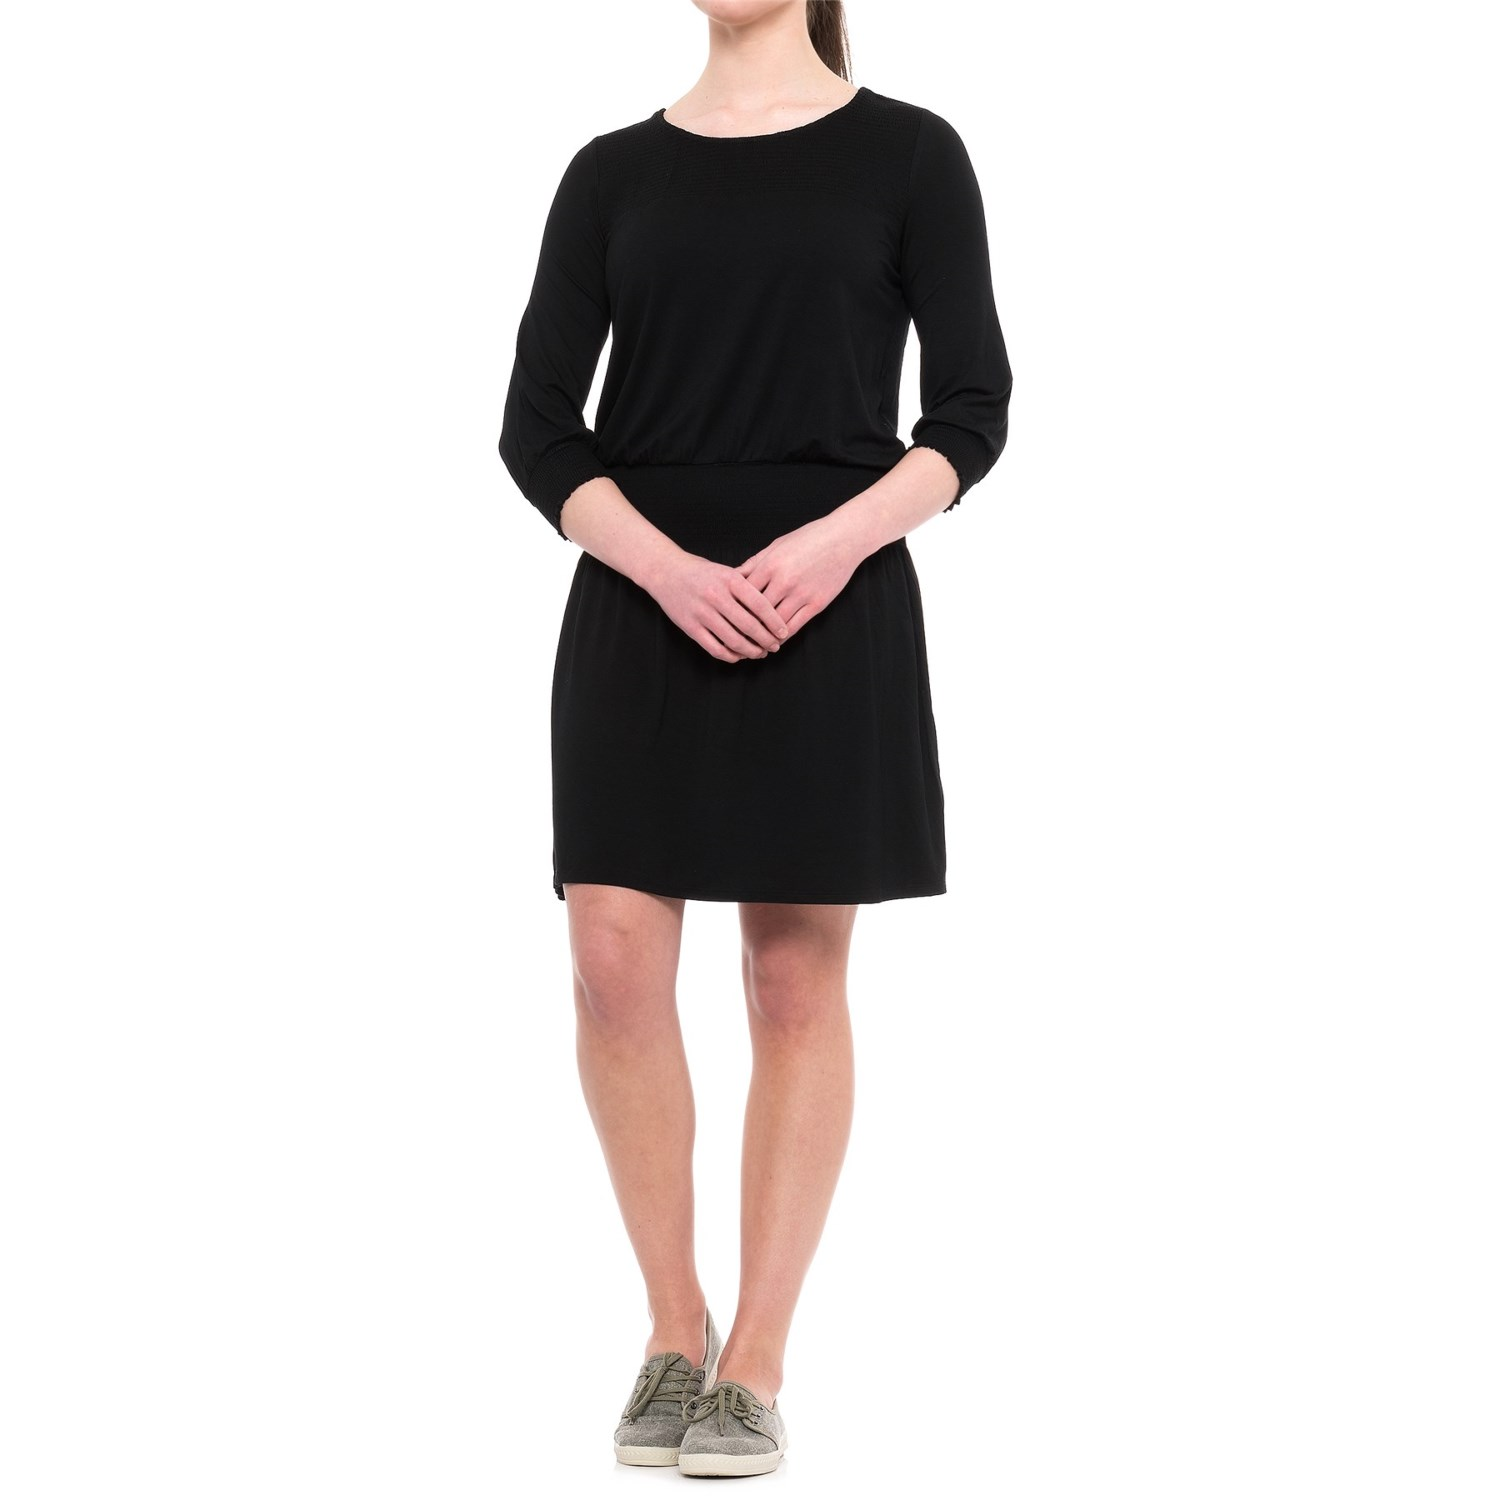 CG Cable & Gauge Smocked Dress (For Women) - Save 69%